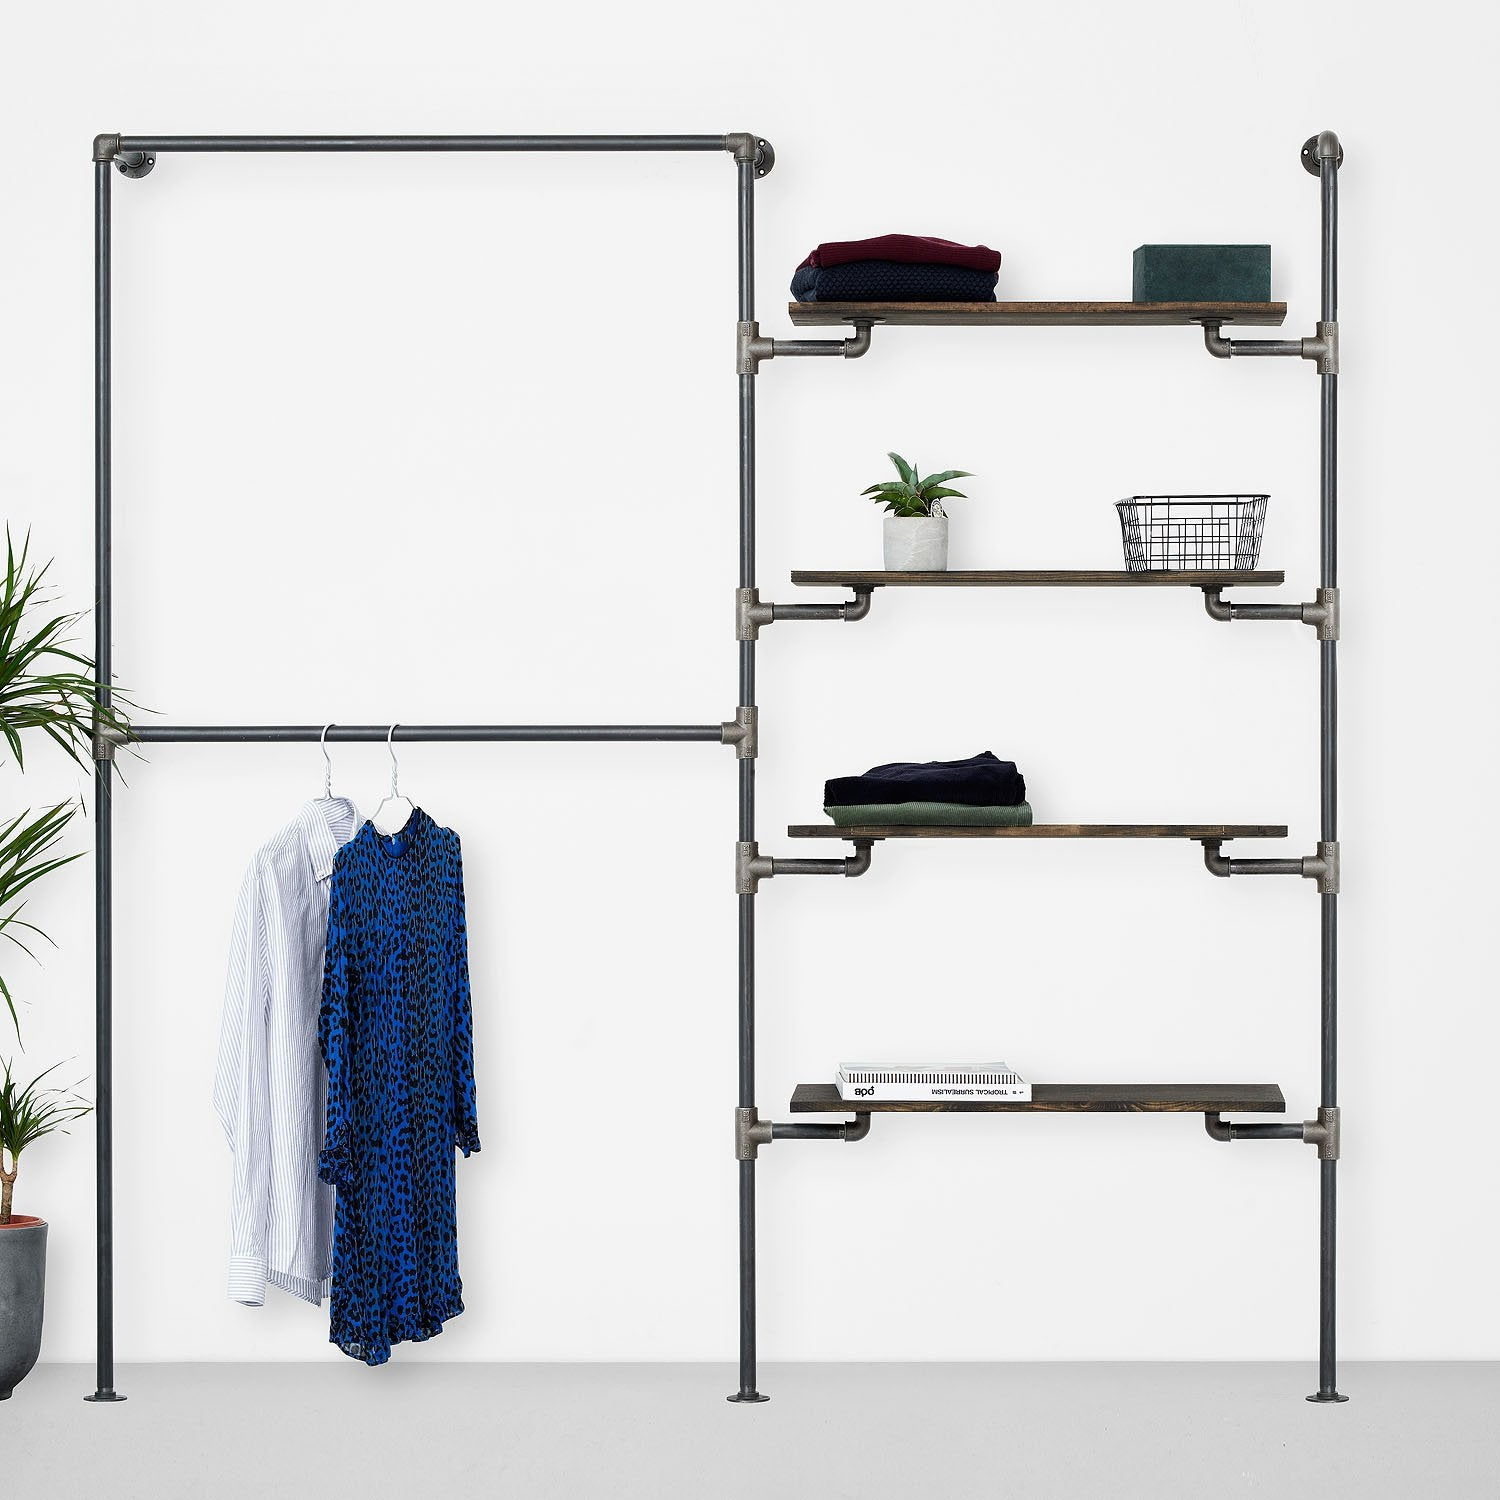 The Walk-In 2 row wardrobe system - 2 rails/ 4 shelves